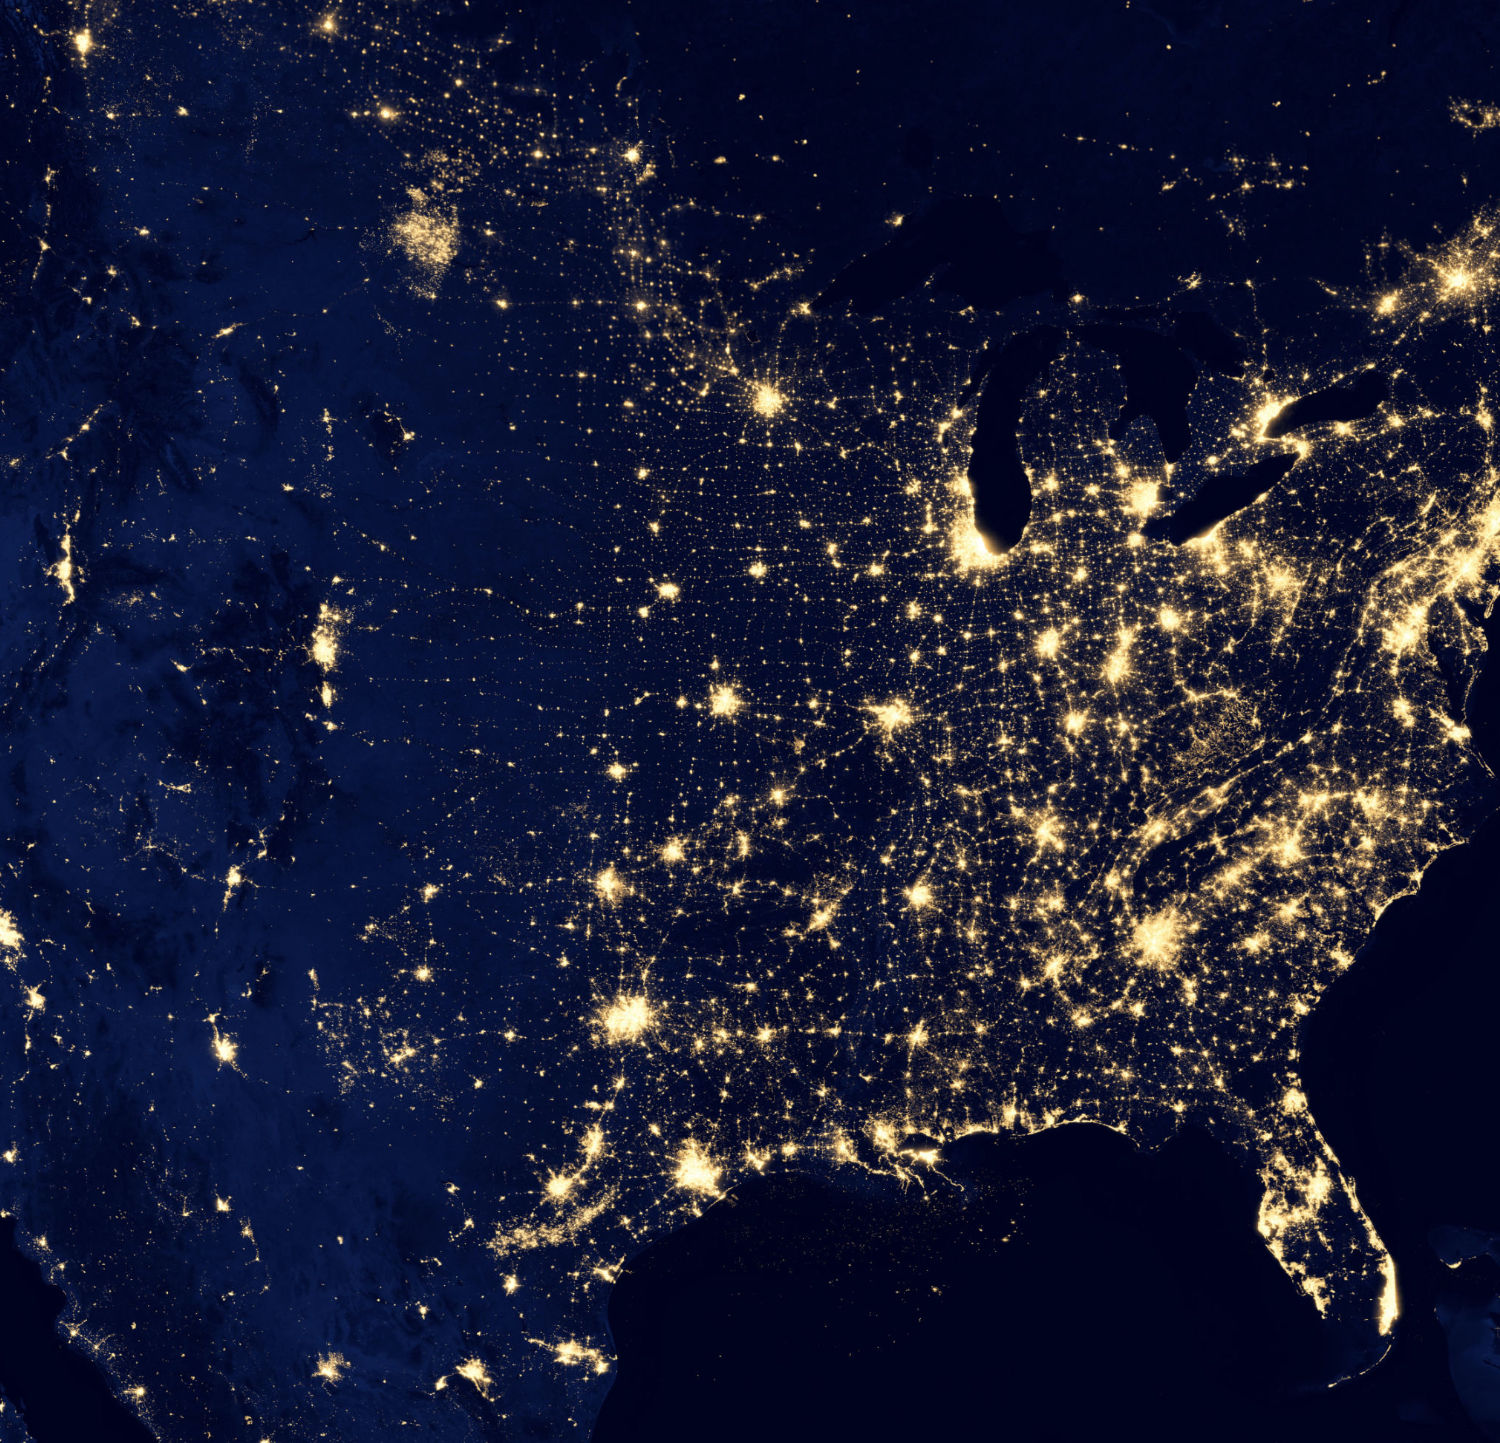 An image taken from Space of America with bright lights against a dark outline of the country to show the use of power and connectivity